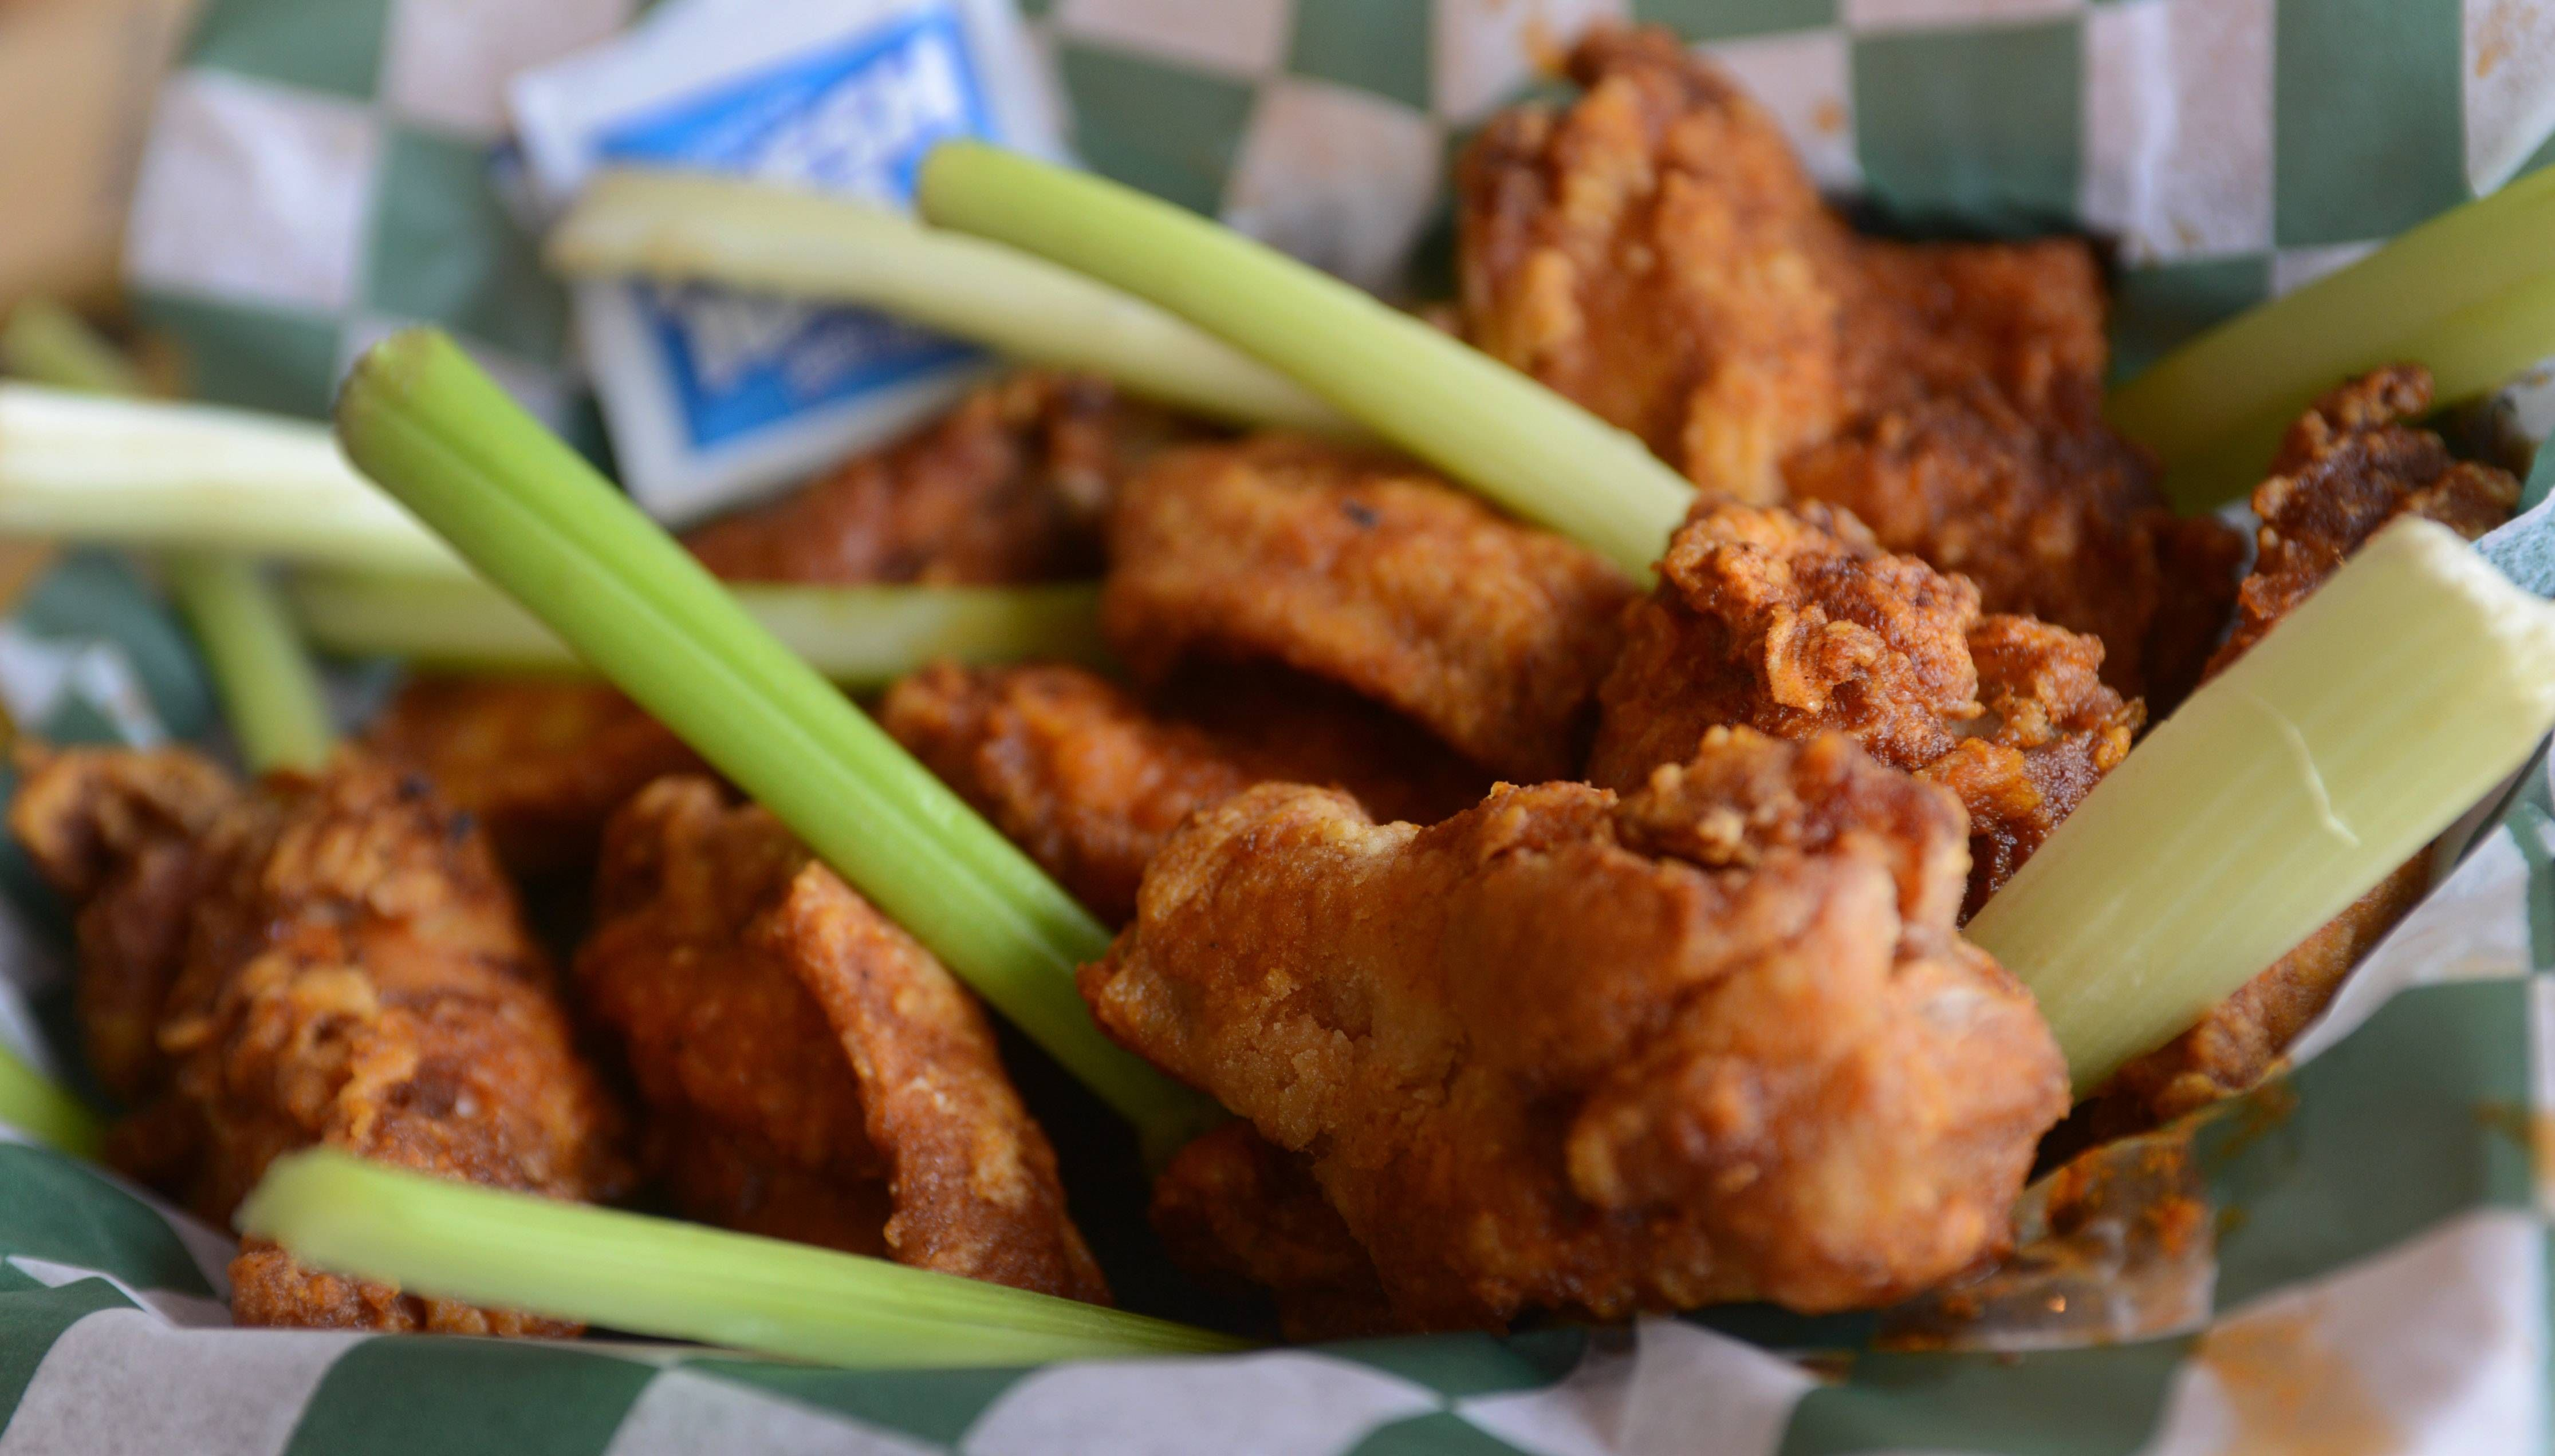 Game On Watch Super Bowl At Suburban Sports Bars Buffalo Wings Beer Specials Super Bowl